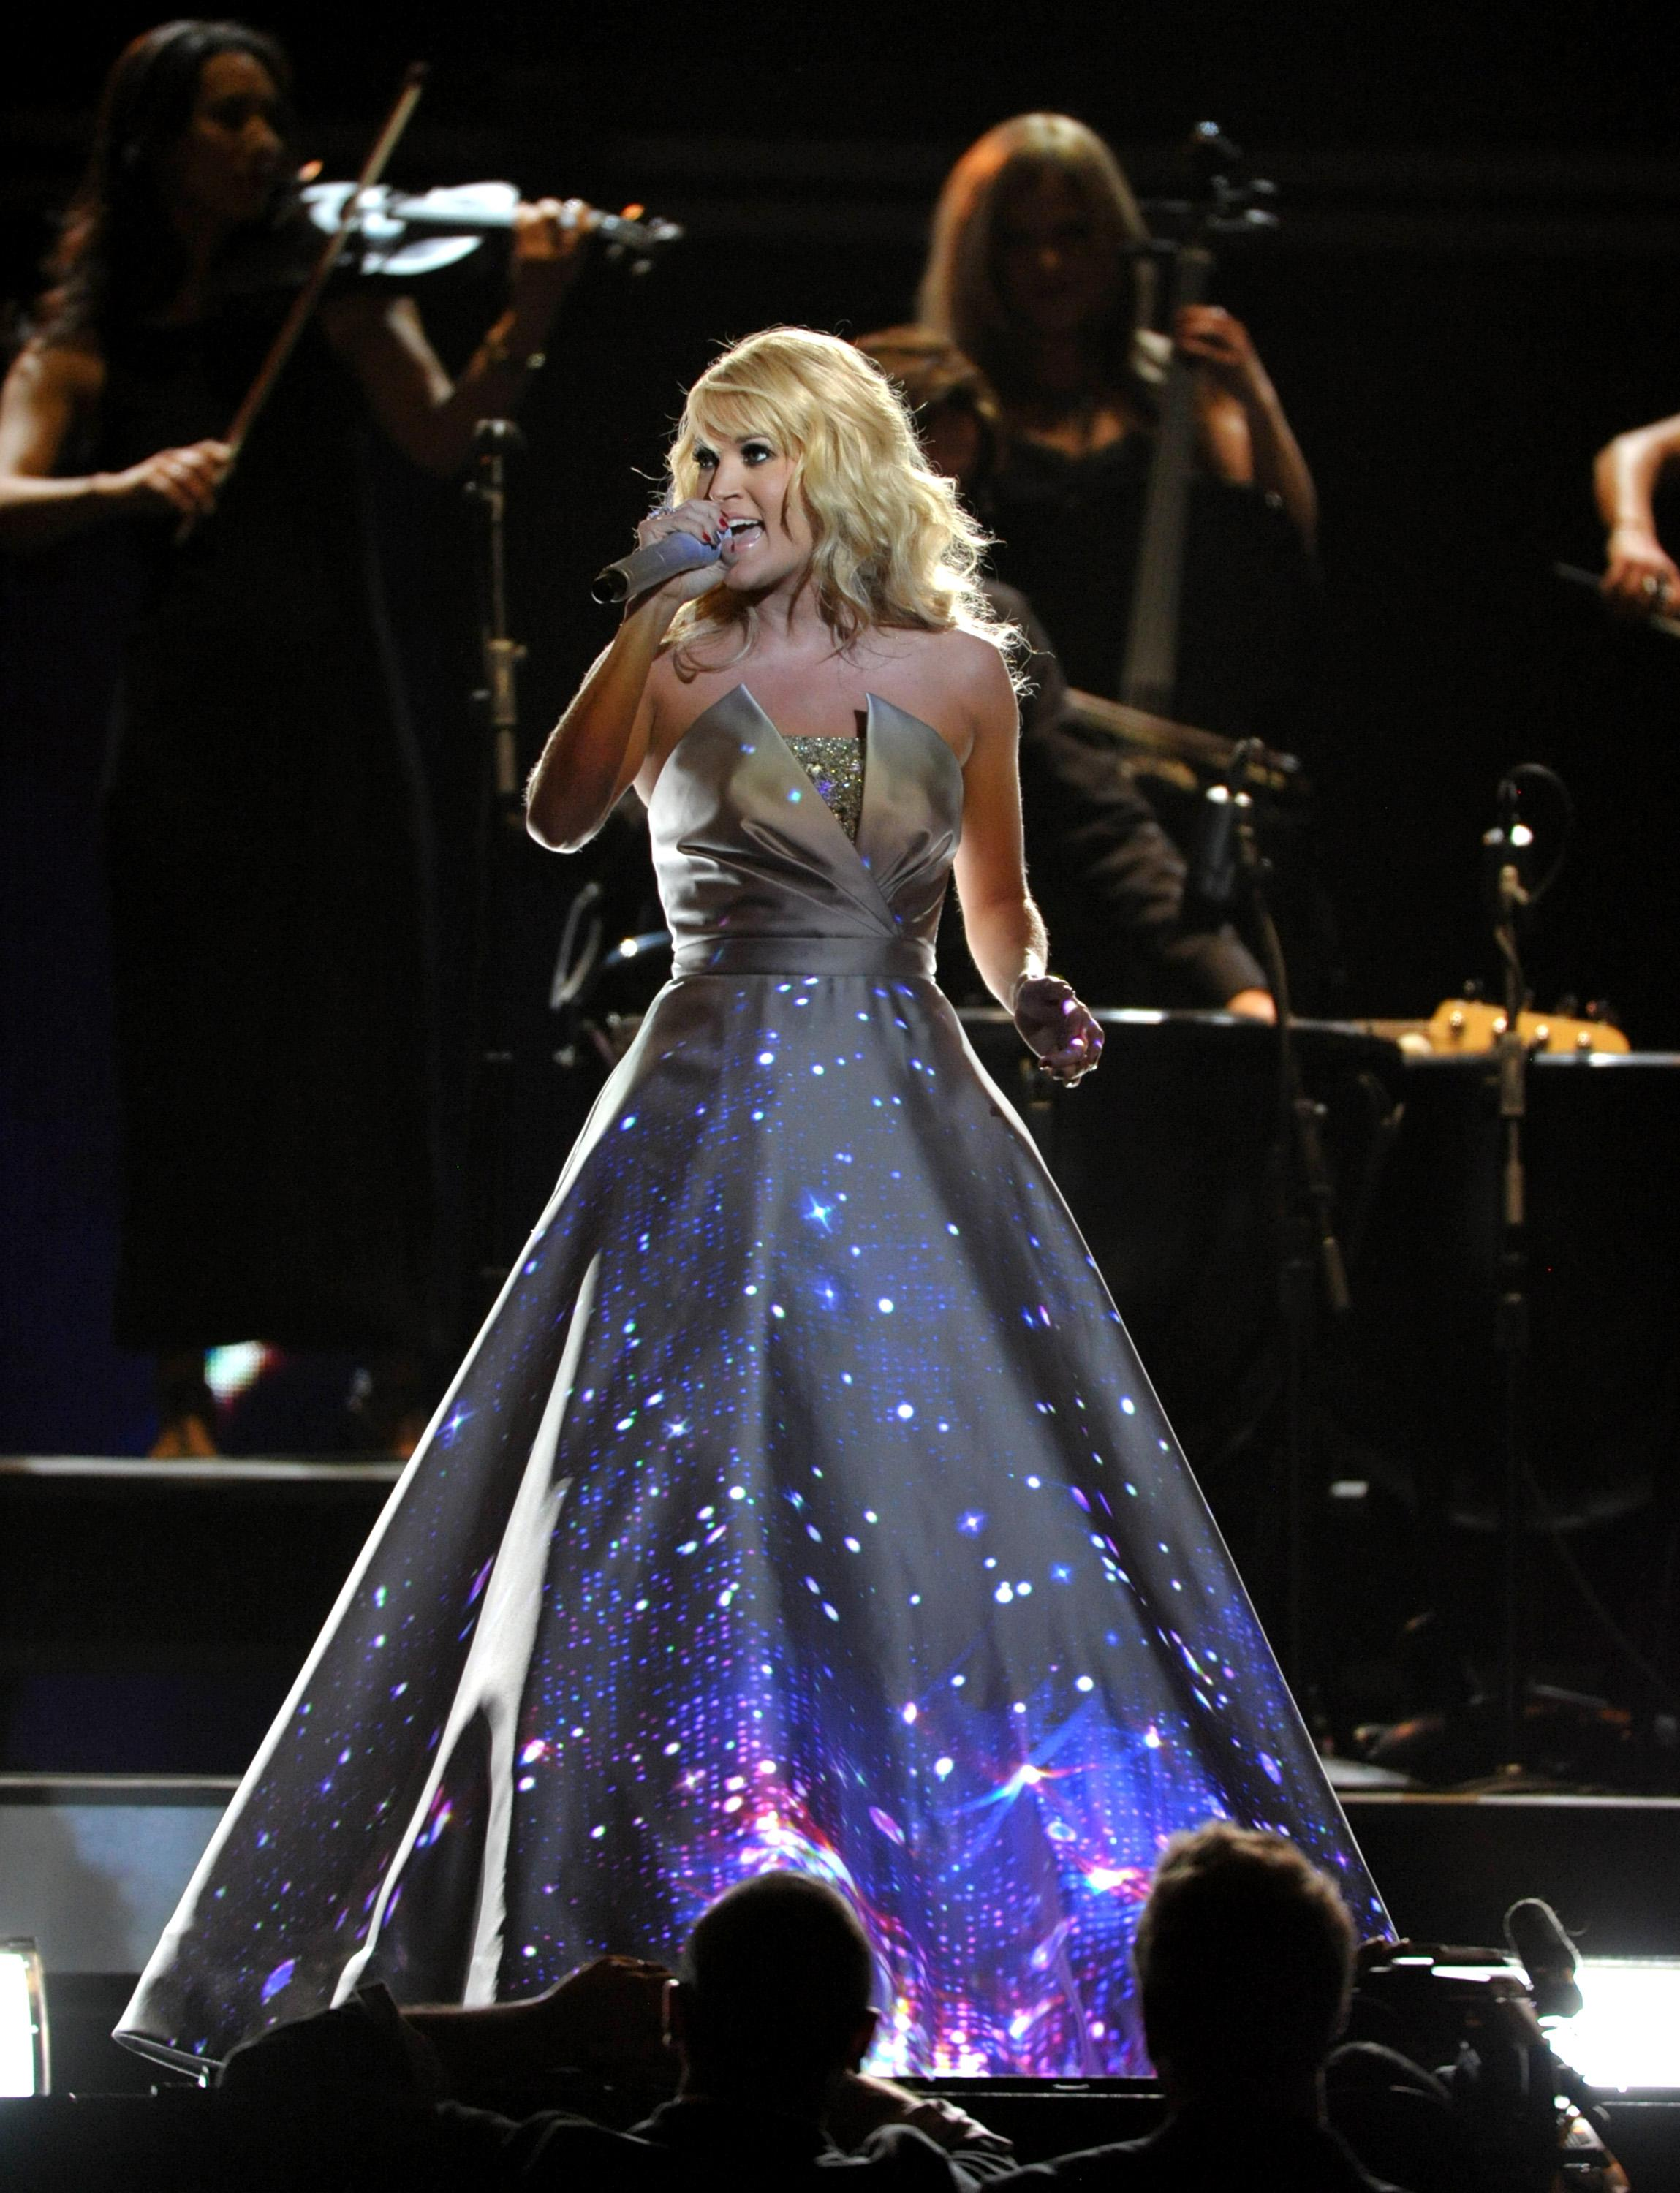 Carrie Underwood performs on stage at the 55th annual Grammy Awards on Sunday, Feb. 10, 2013, in Los Angeles. (Photo by John Shearer/Invision/AP)